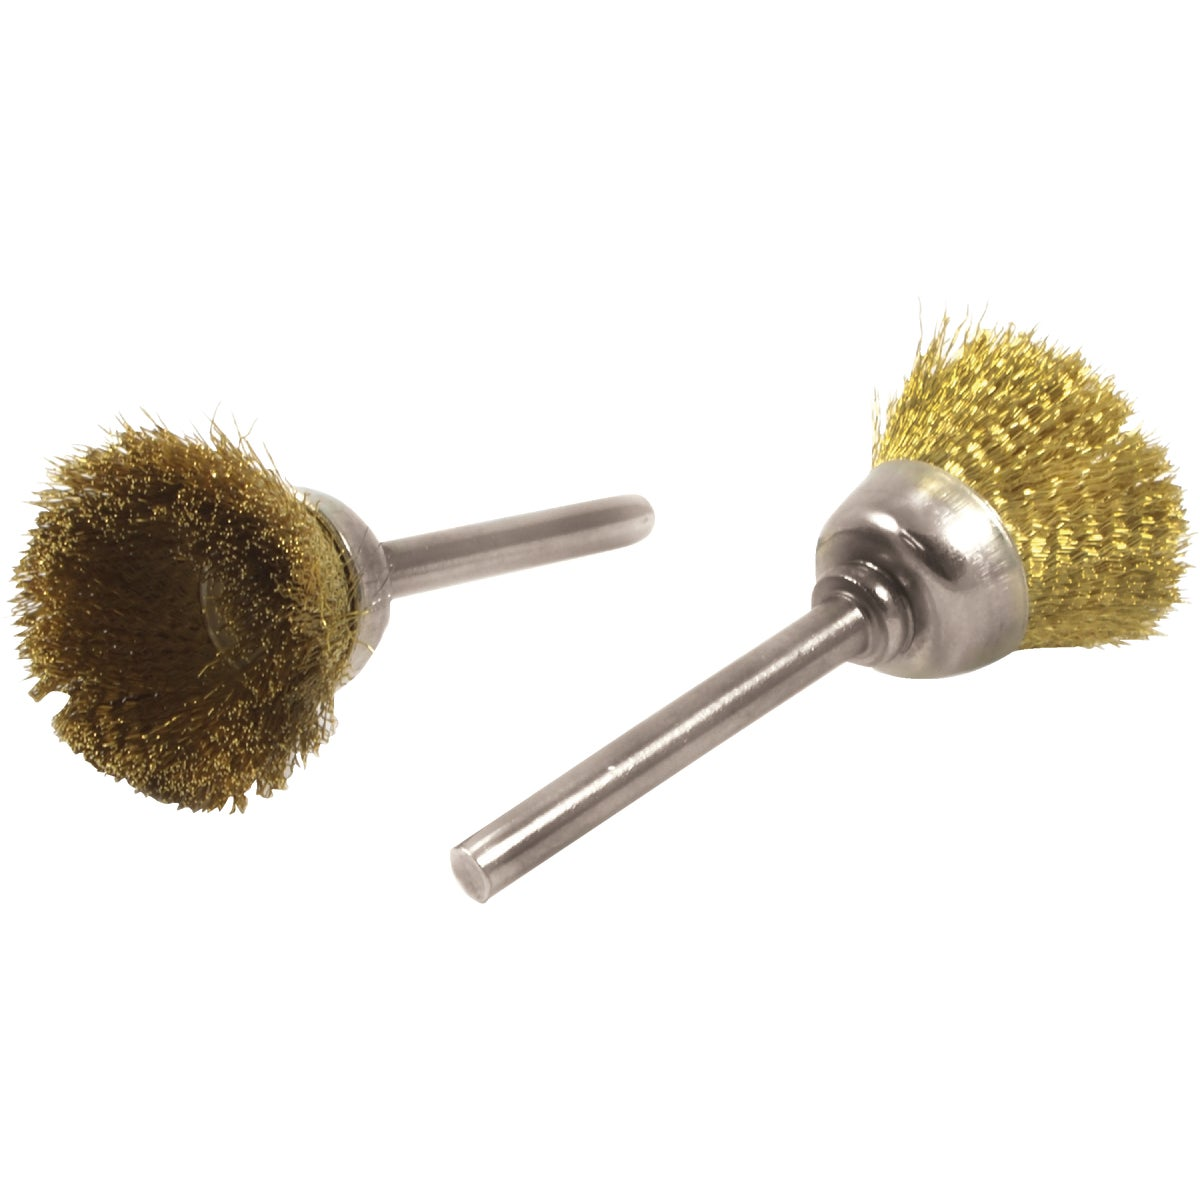 BRASS CUP BRUSH SET - 60232 by Forney Industries